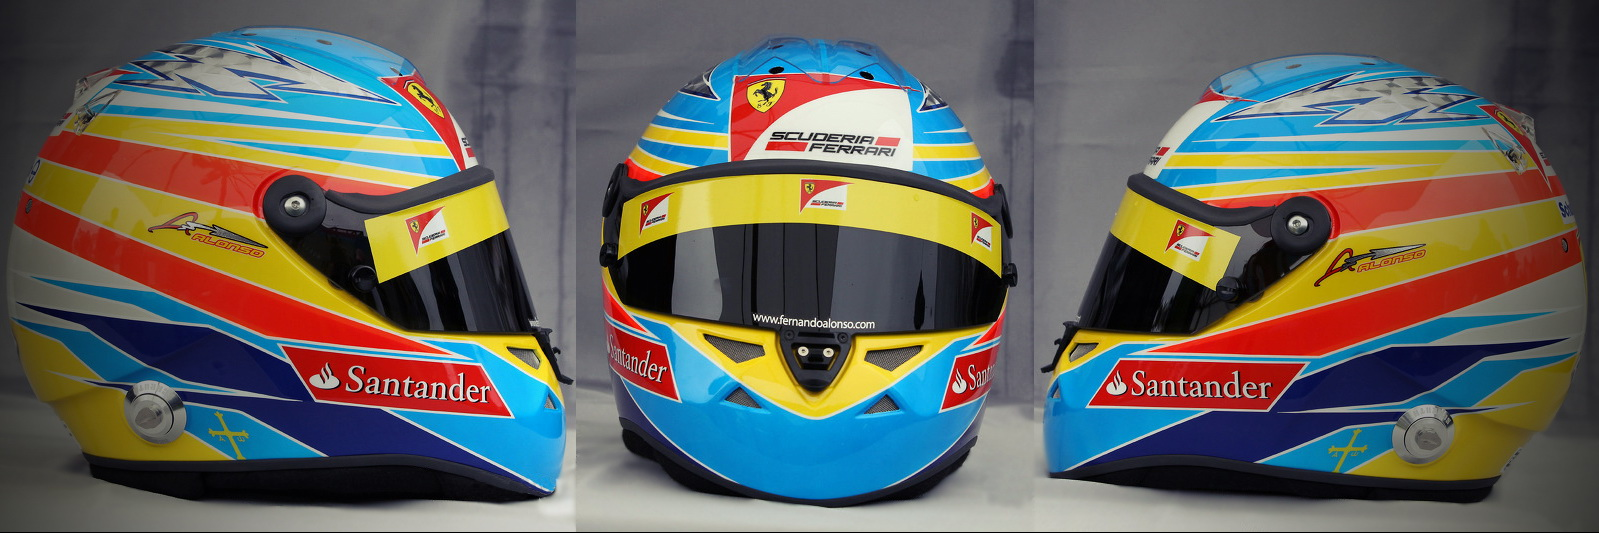 Шлем Фернандо Алонсо на сезон 2011 года | 2011 helmet of Fernando Alonso